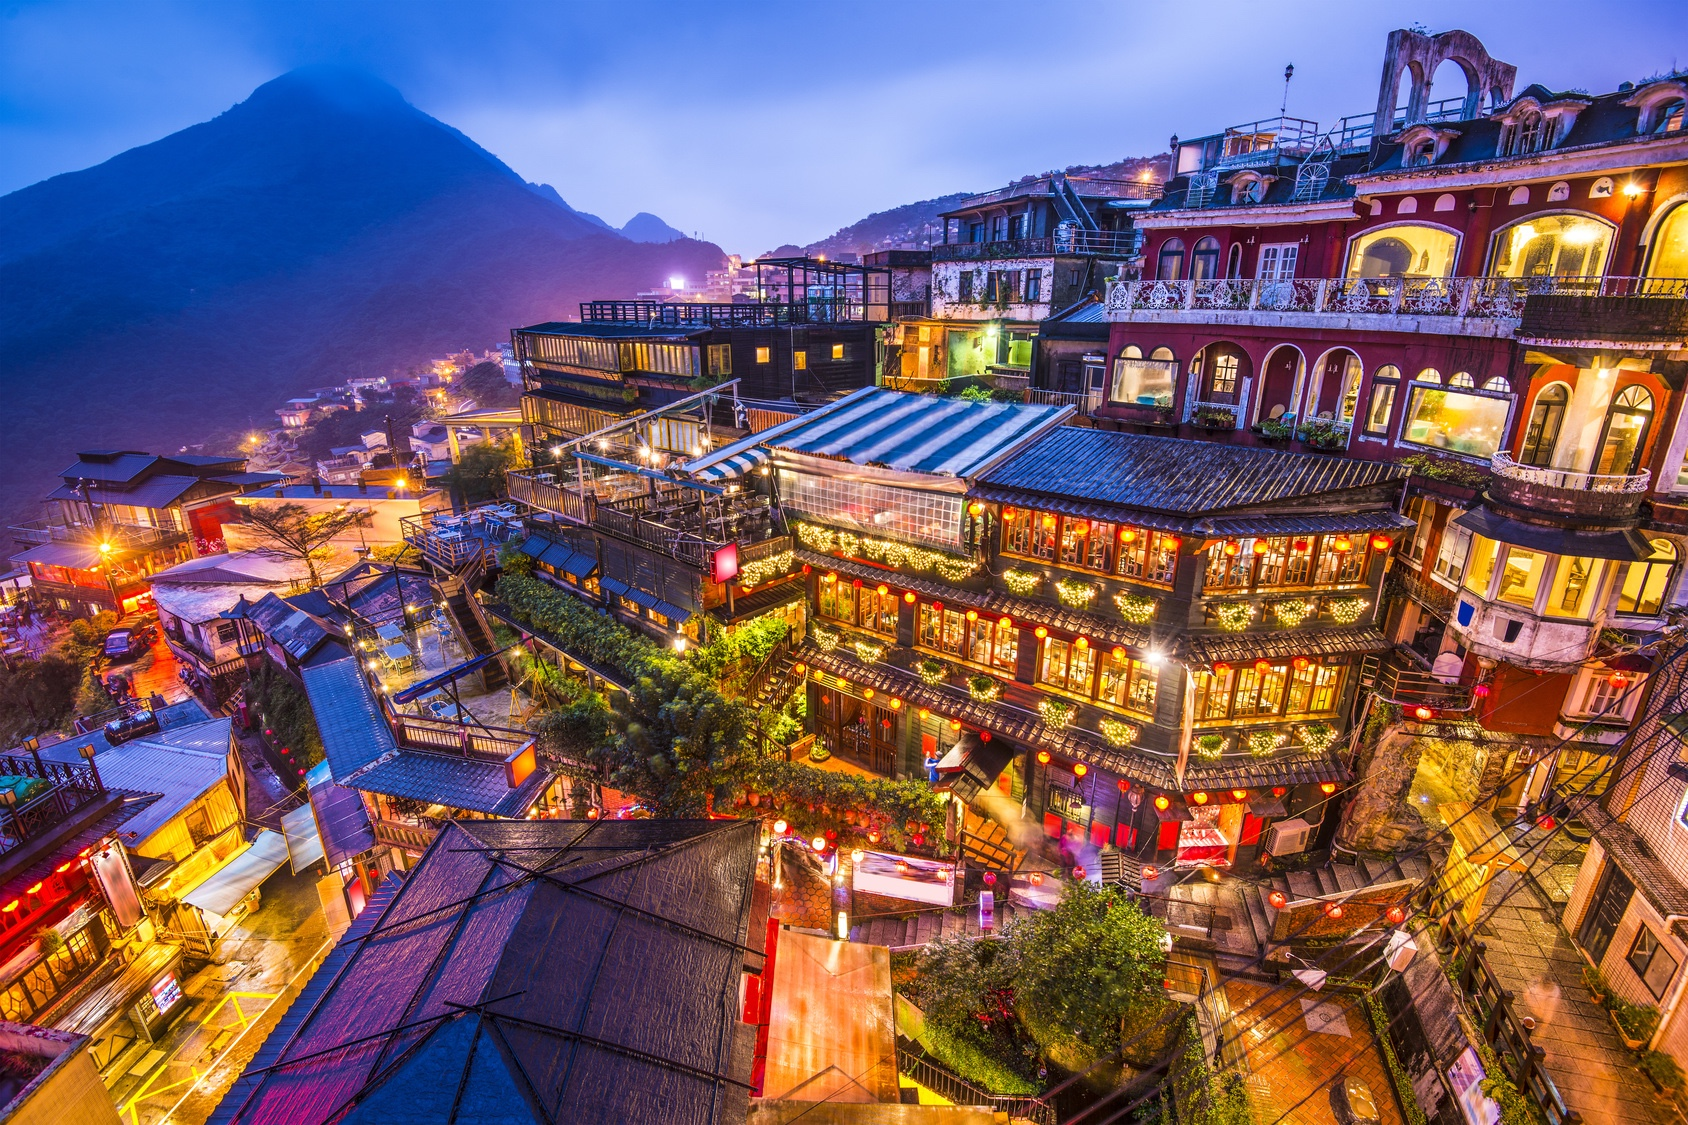 Hillside teahouses in Jiufen, Taiwan